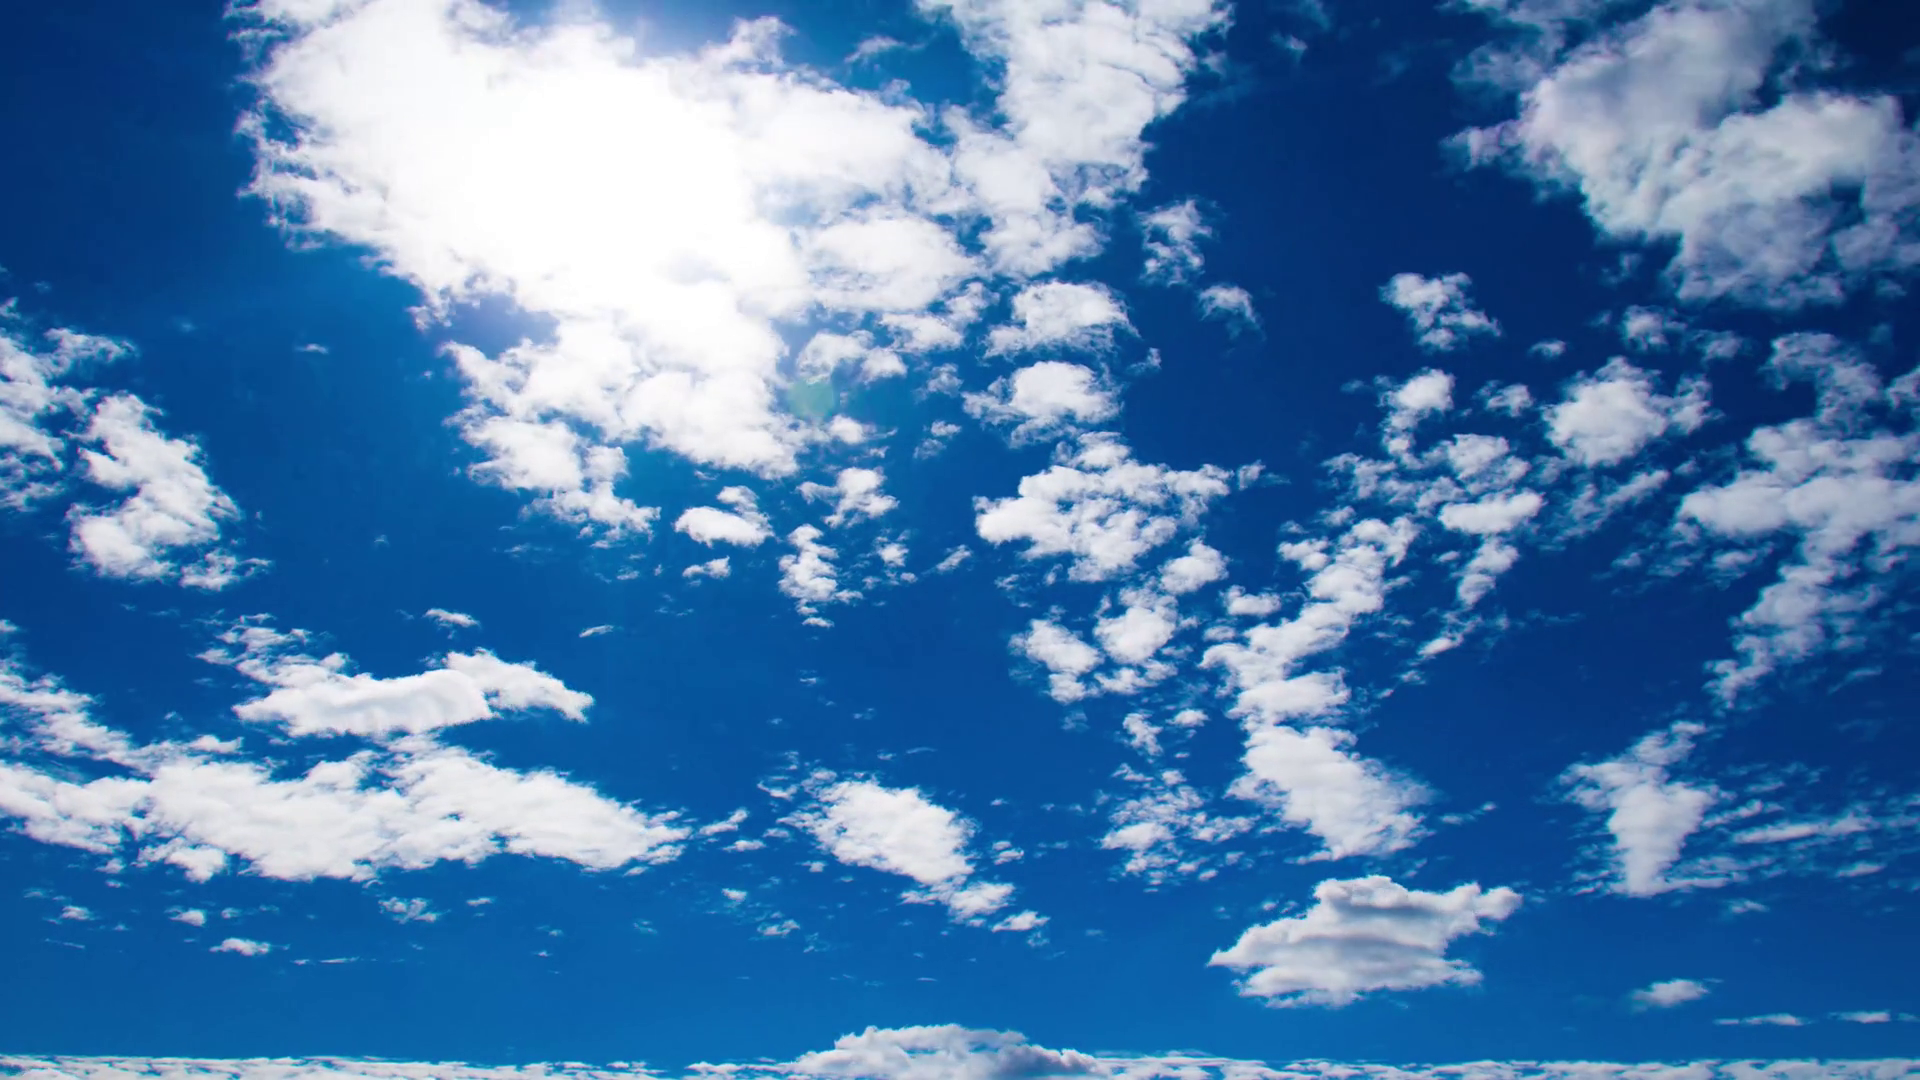 Running clouds on the sunny sky. Timelapse Stock Video Footage.